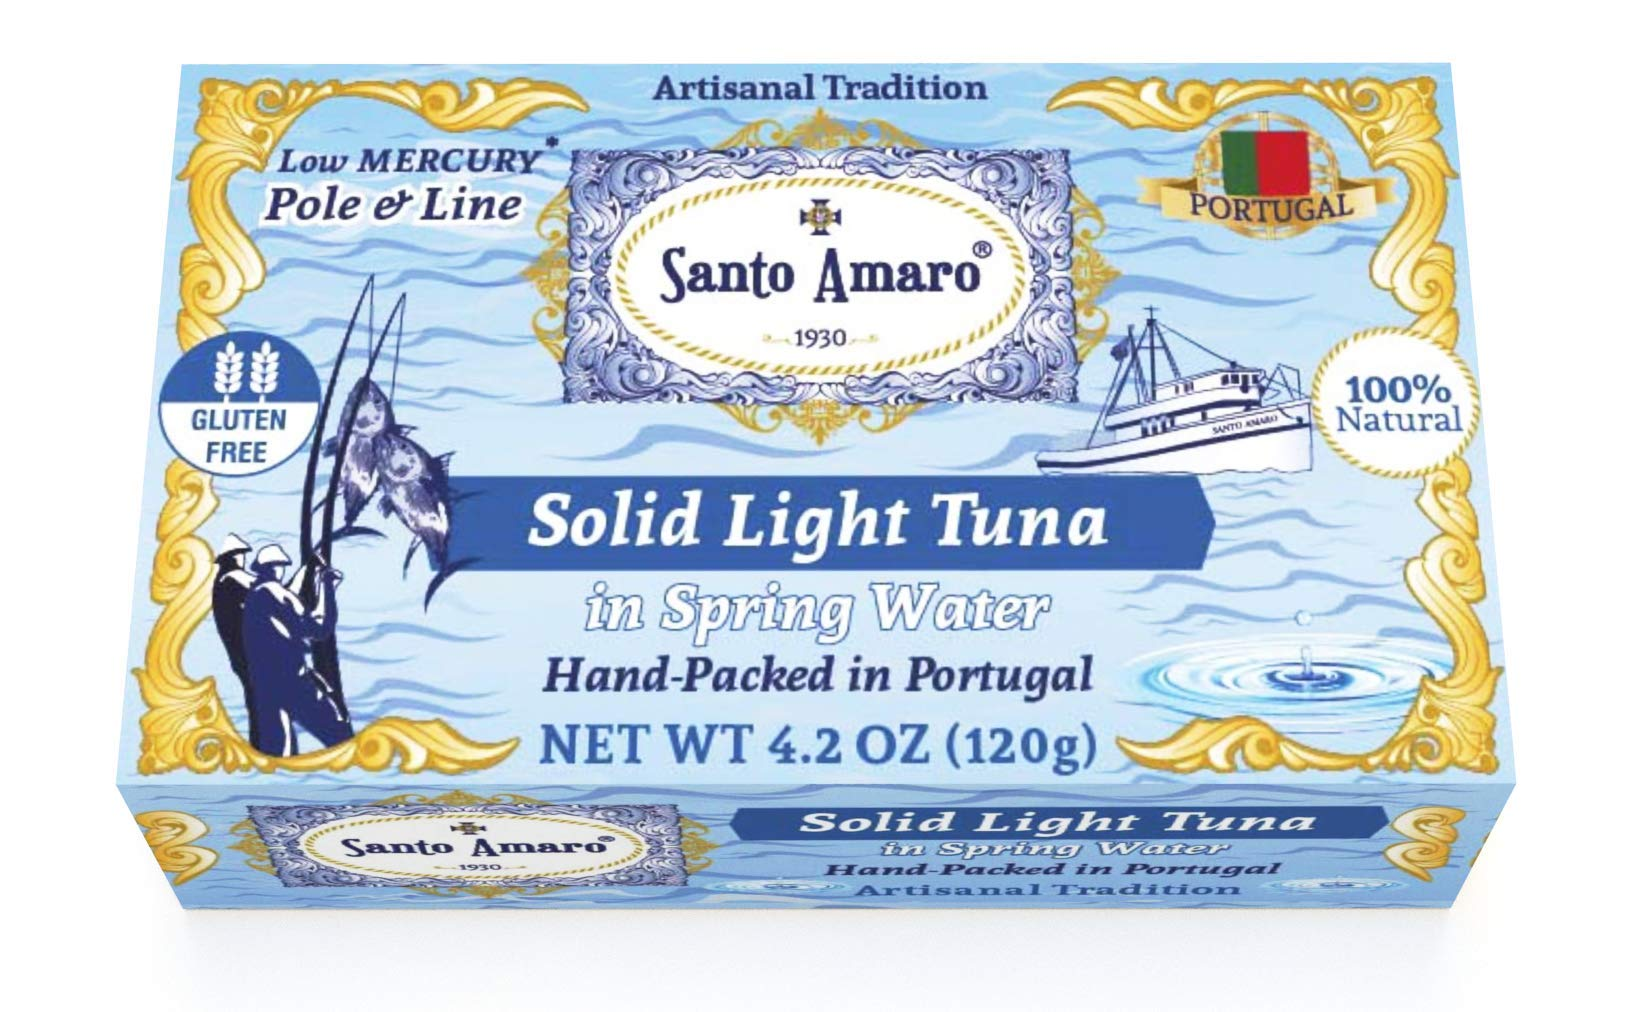 SANTO AMARO Artisanal Wild Tuna in Spring Water (12 Pack, 120g Each) PRISTINE STYLE! 100% Natural - GMO FREE - Pole & Line Caught Skipjack - Keto - Paleo - Solid Hand Packed in PORTUGAL by Santo Amaro